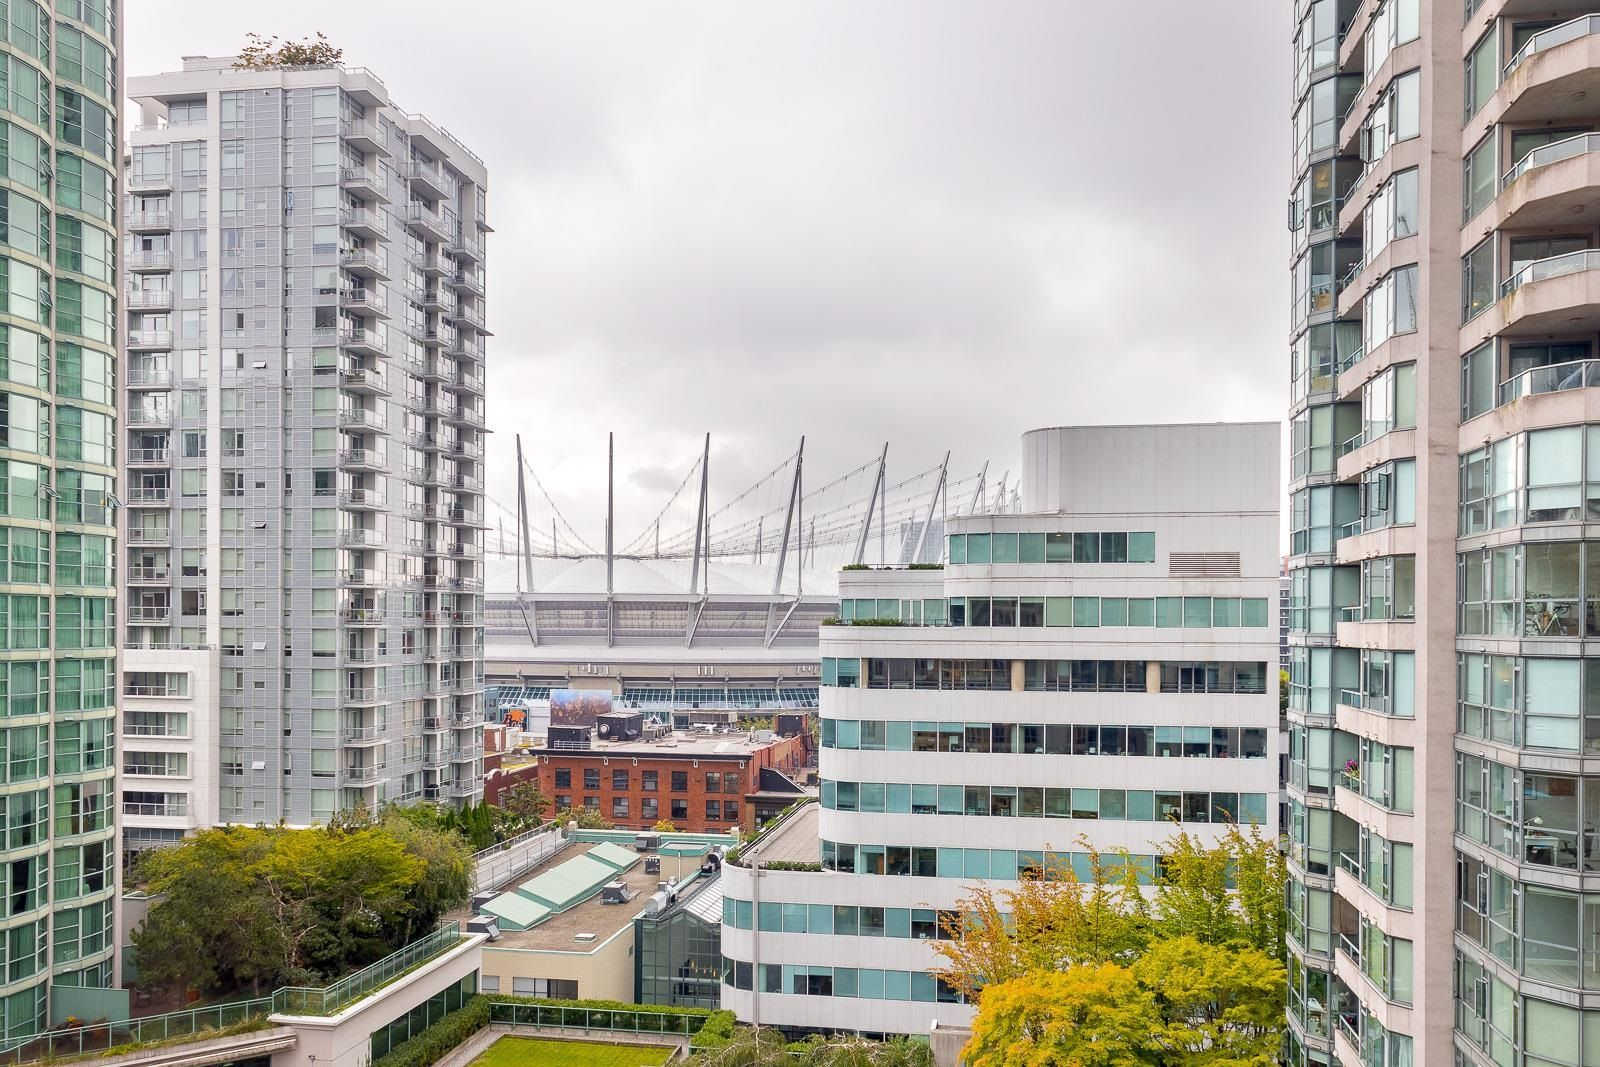 """Main Photo: 1203 867 HAMILTON Street in Vancouver: Downtown VW Condo for sale in """"JARDINE'S LOOKOUT"""" (Vancouver West)  : MLS®# R2613023"""